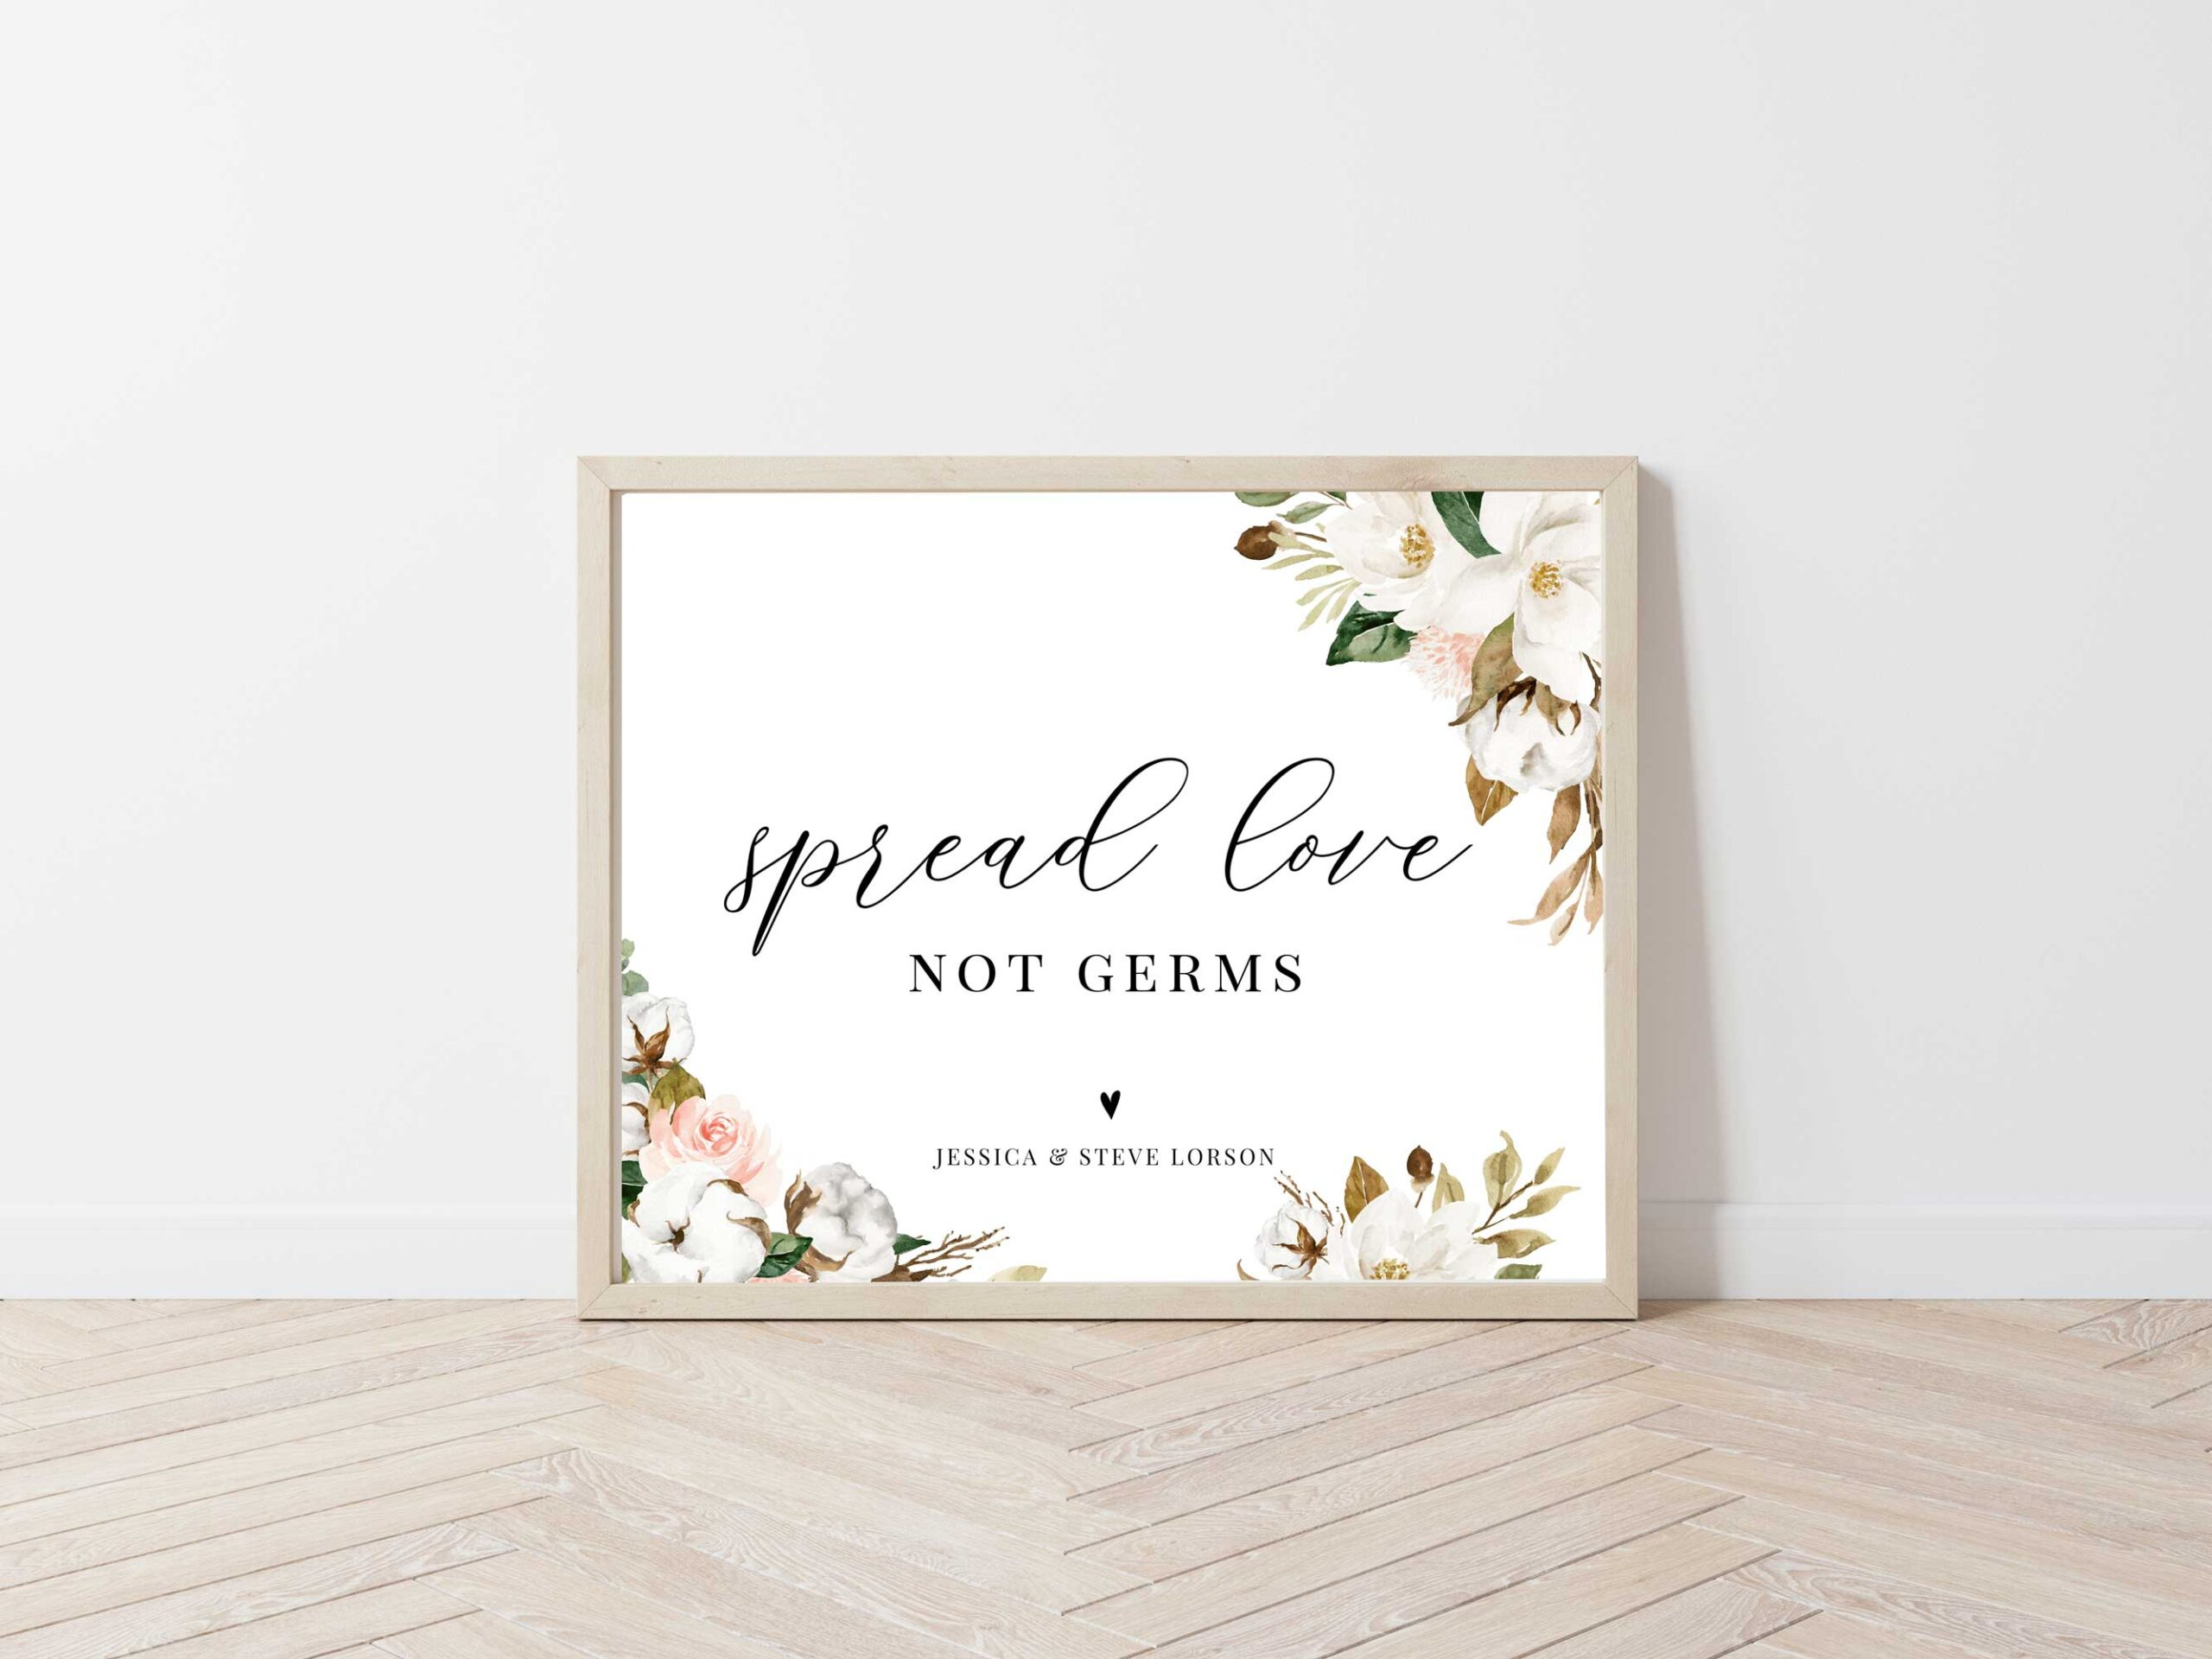 magnolia spread love not germs wedding sign